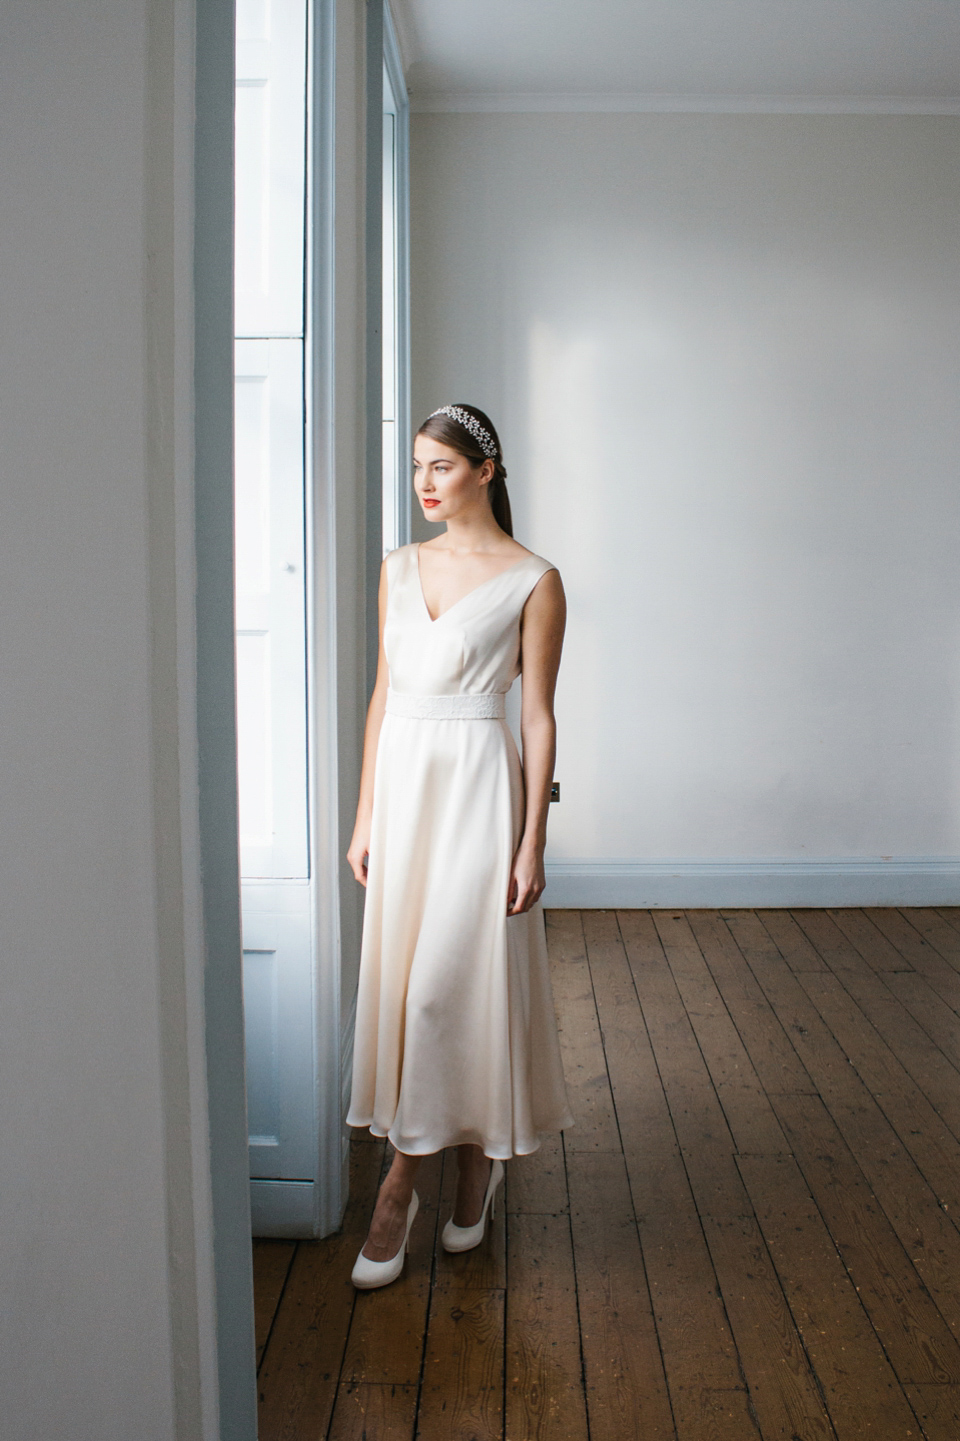 Introducing The New Bridal Capsule Collection From Andrea Hawkes